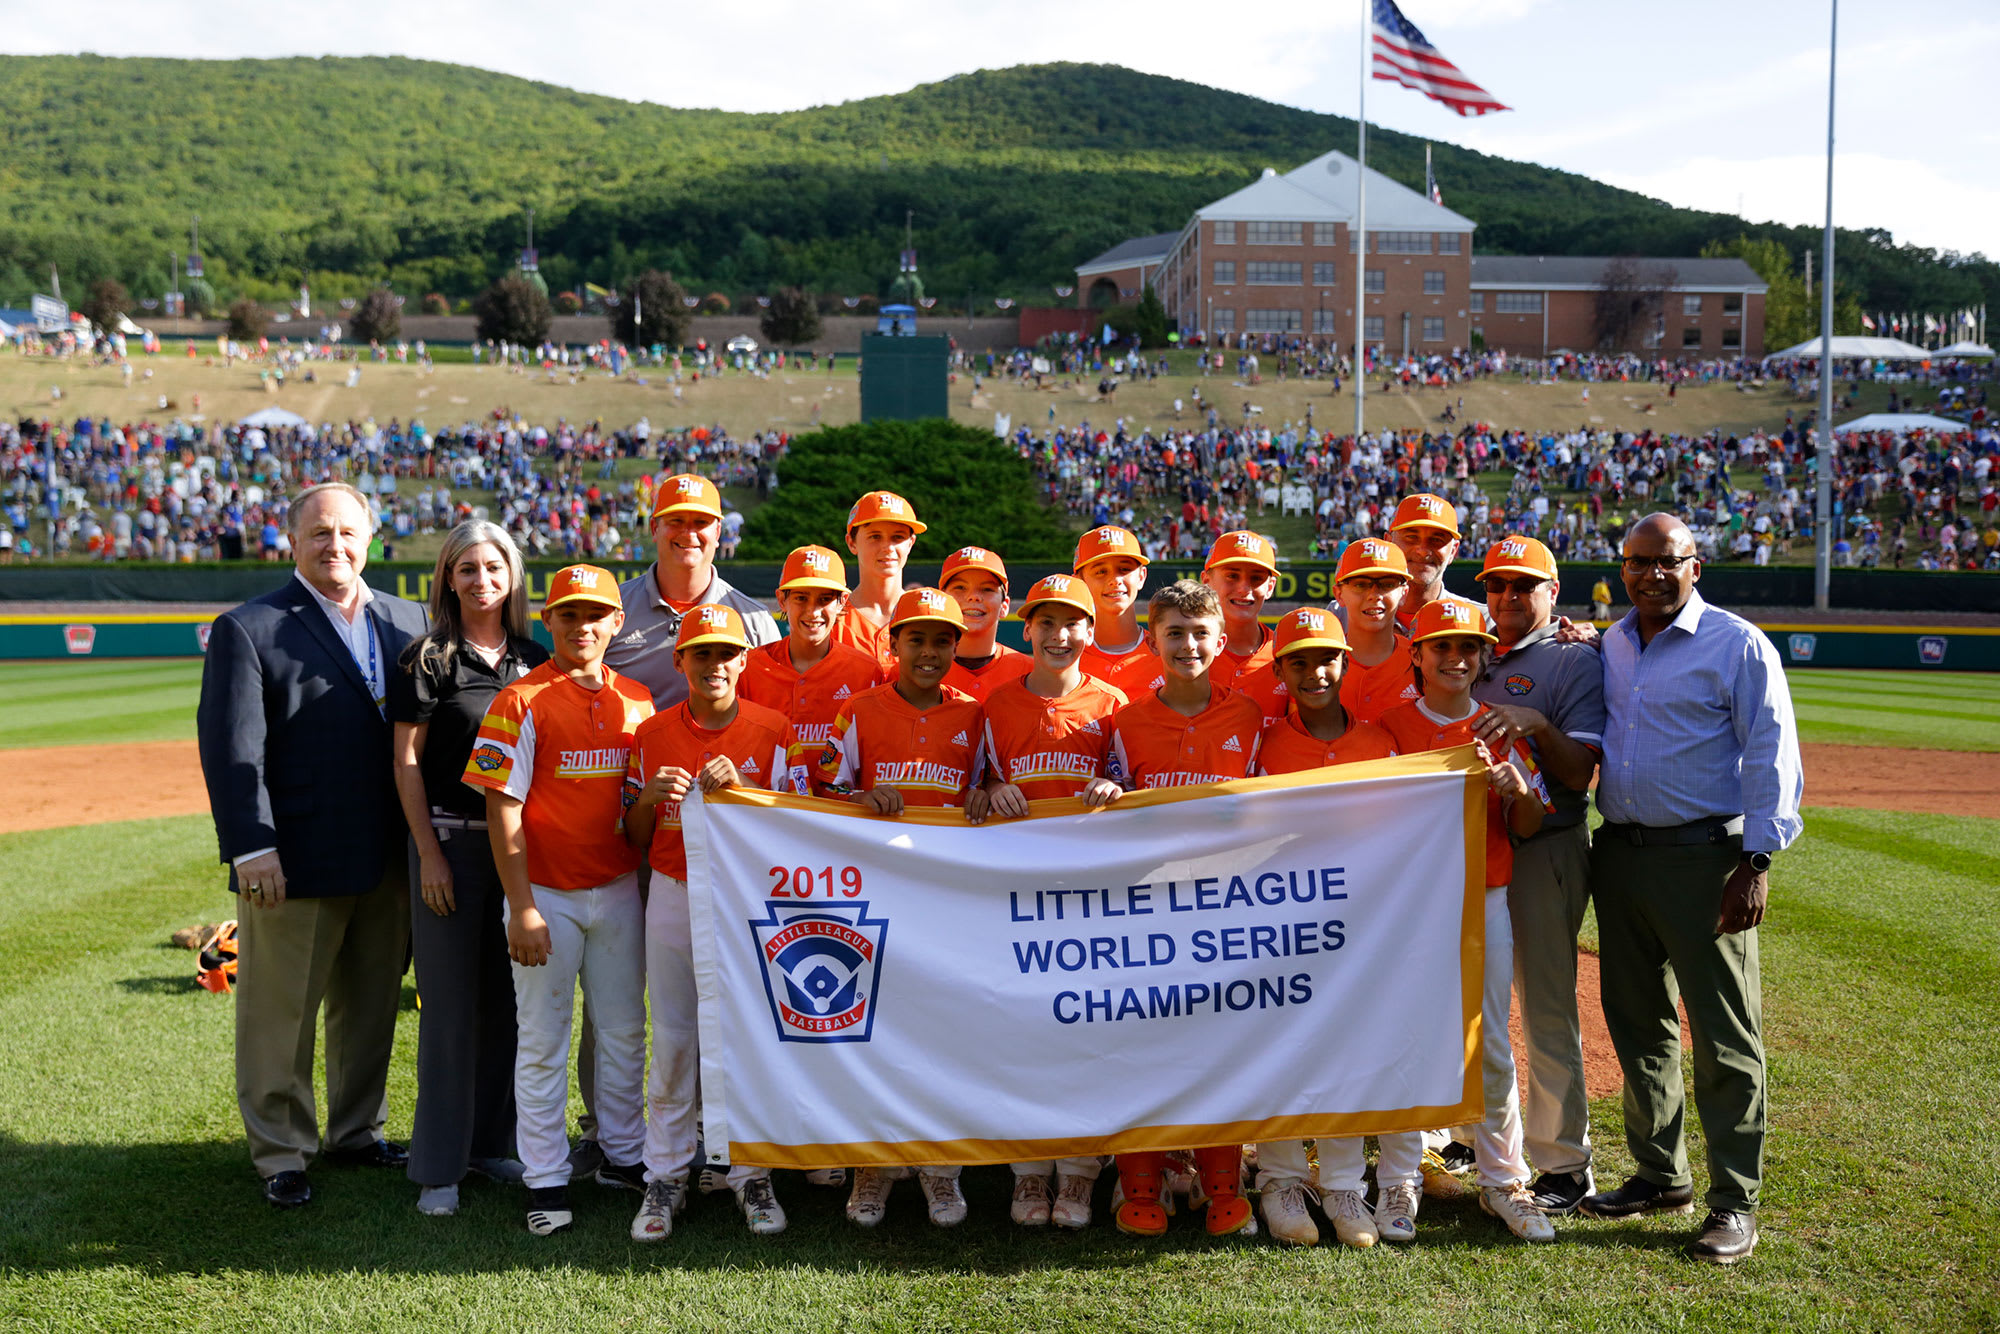 2019 llbws champs southwest banner photo